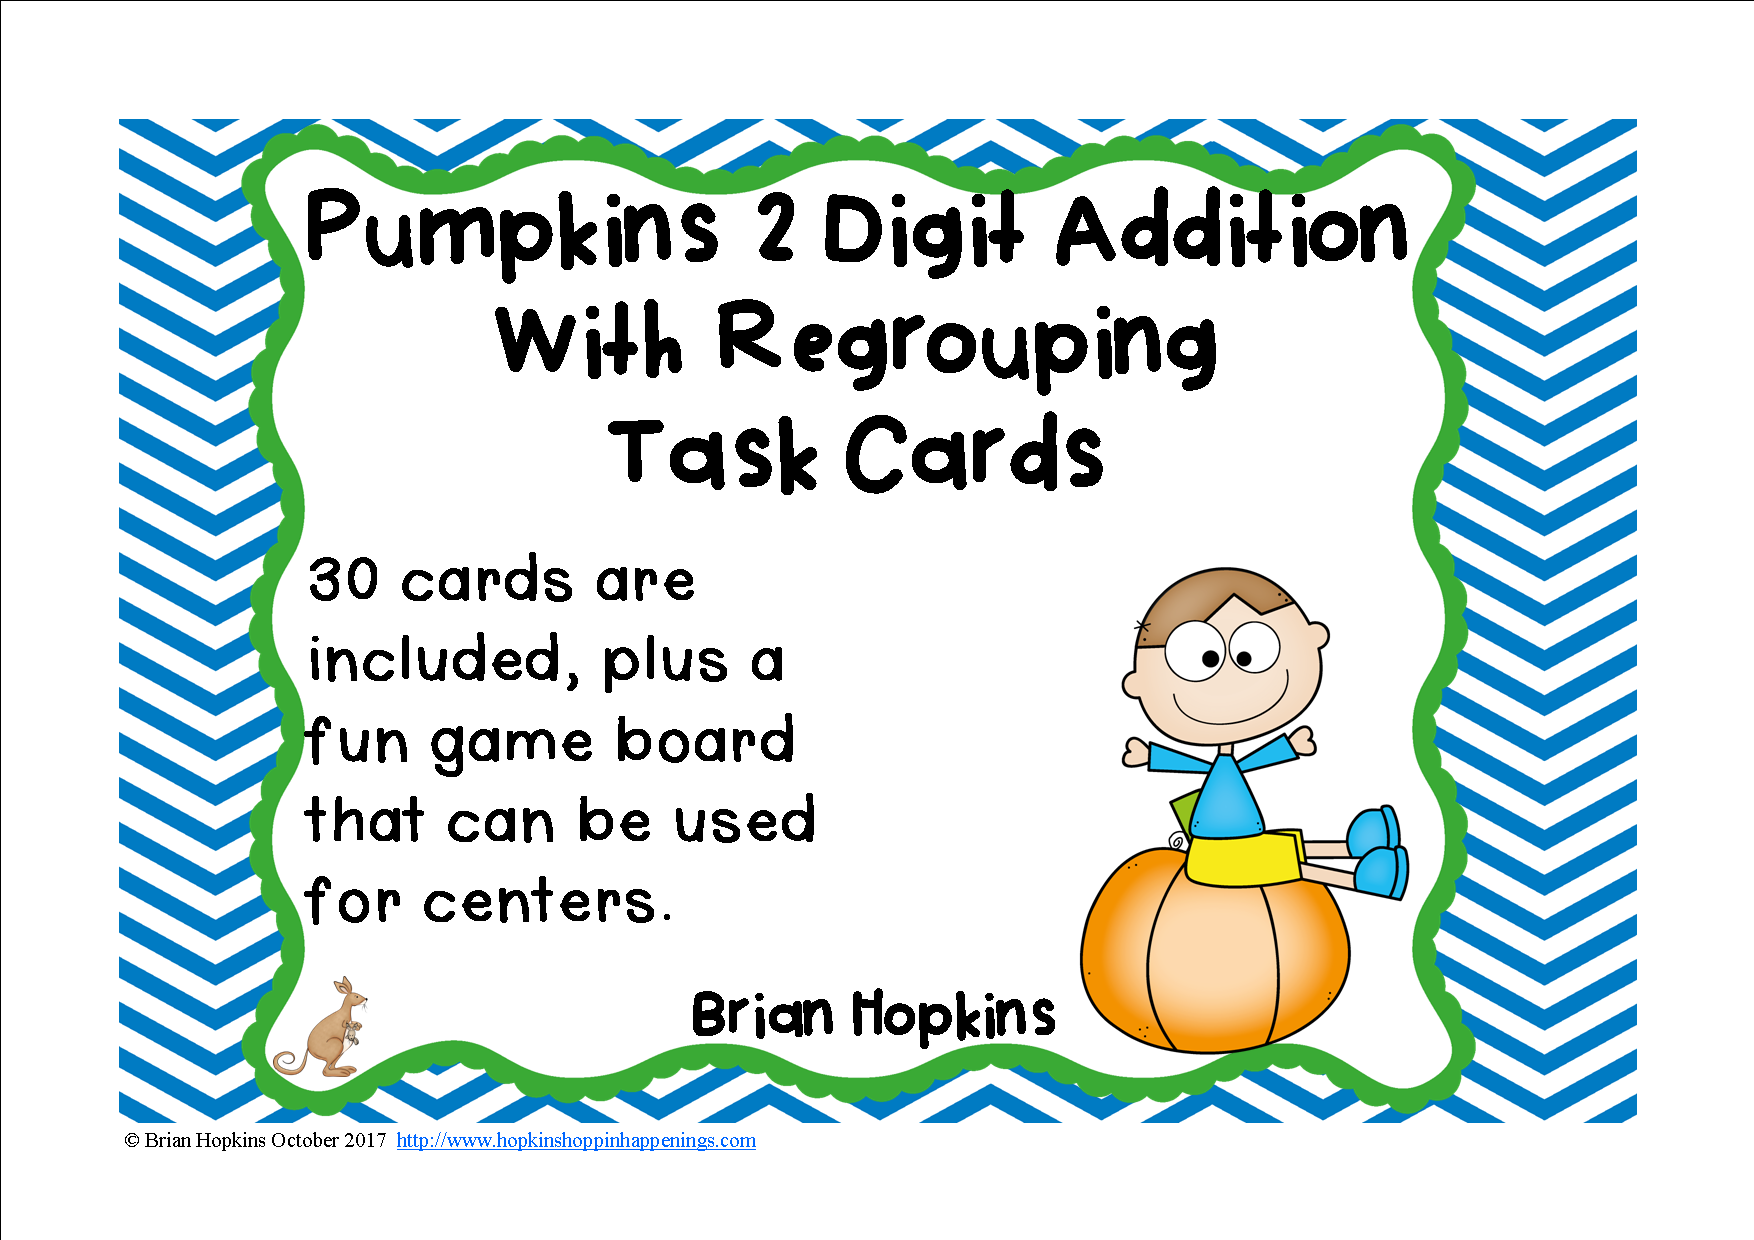 Pumpkins 2 Digit Addition Regrouping Task Cards With